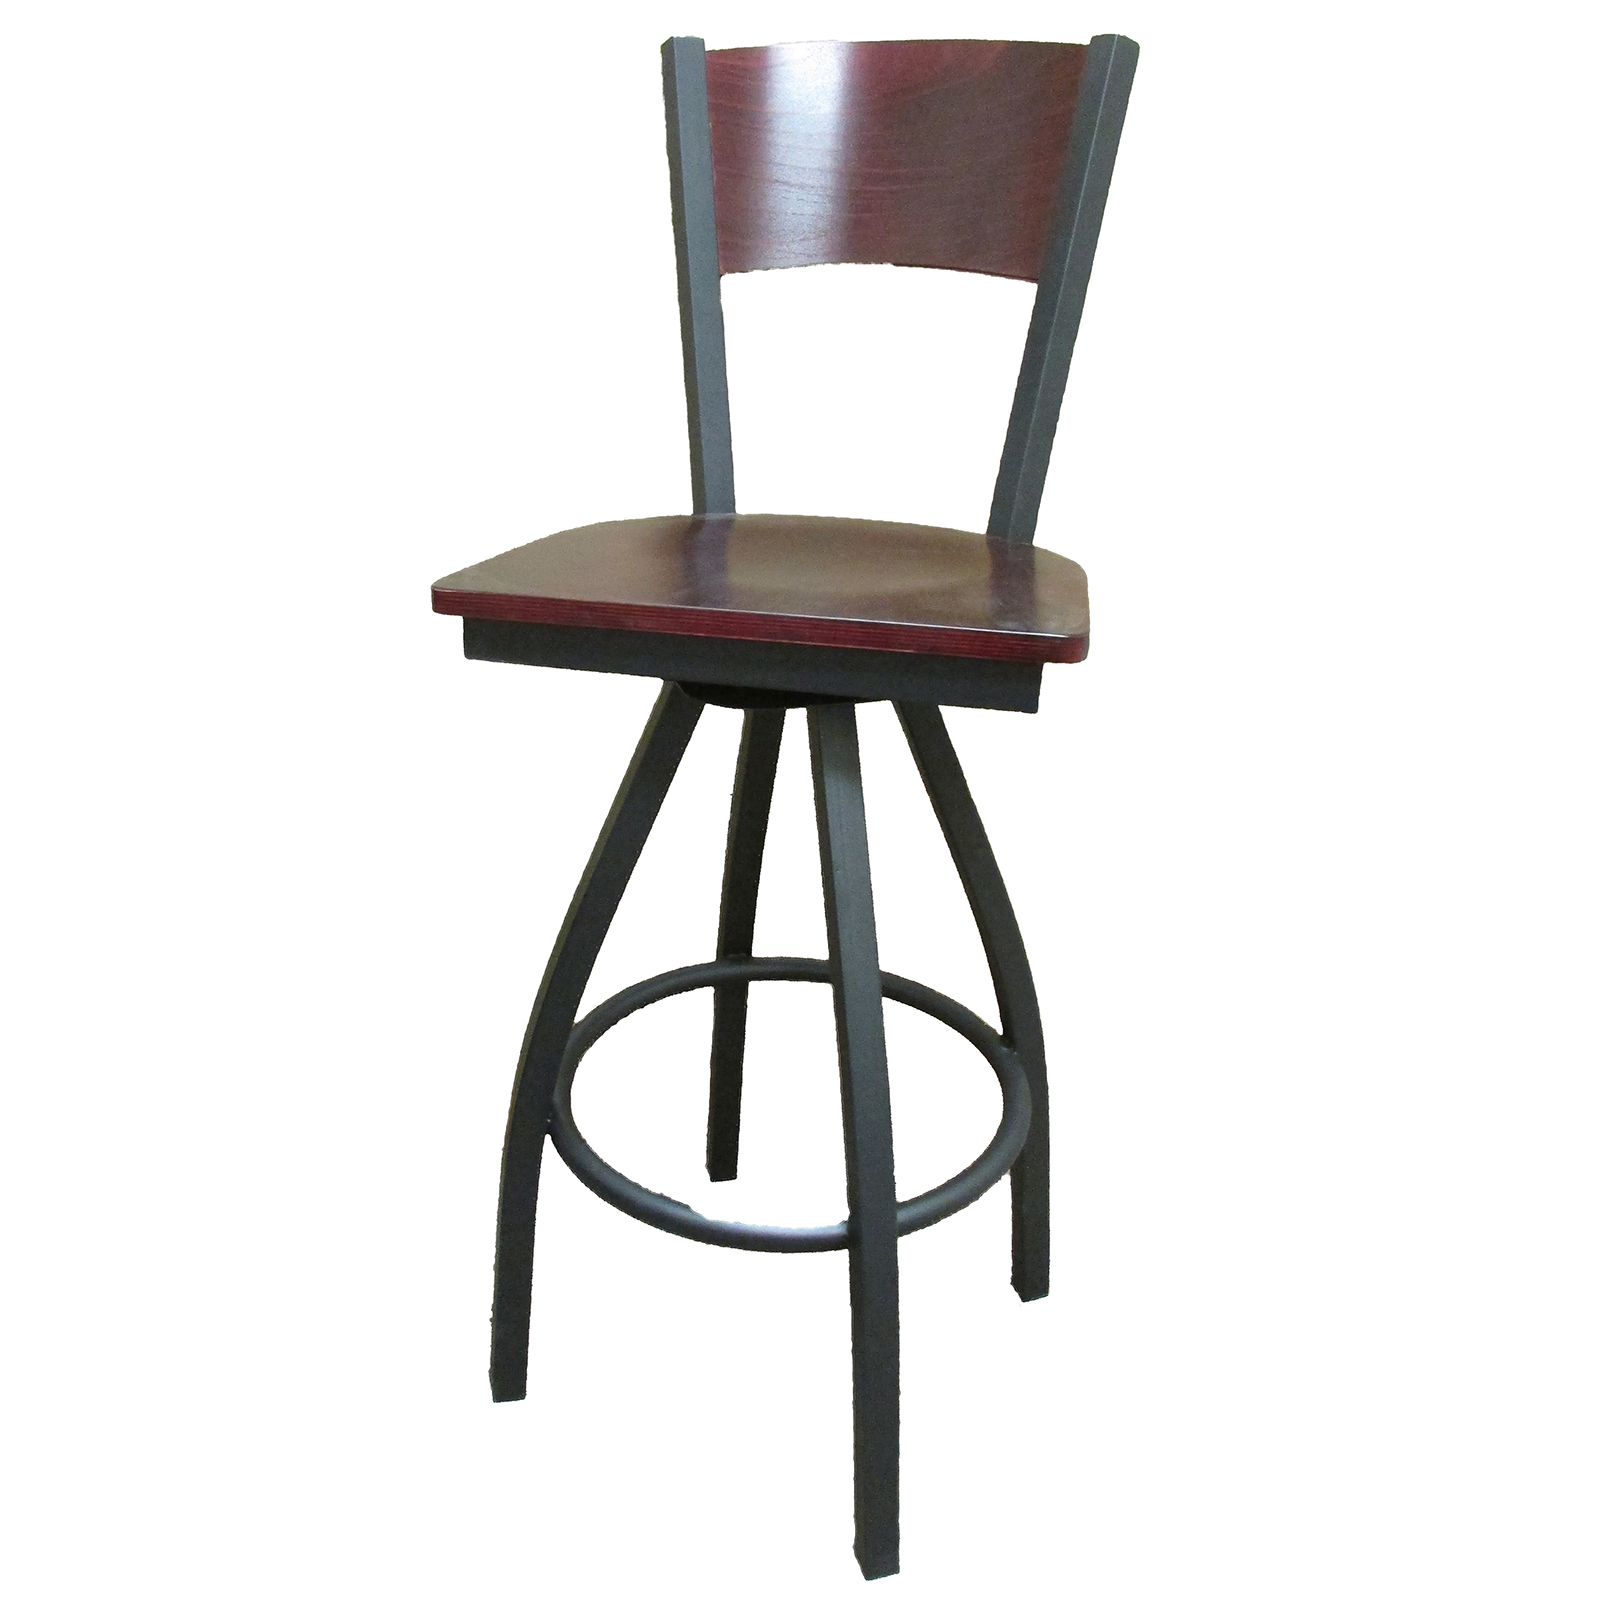 Oak Street SL2150-1S-P bar stool, swivel, indoor